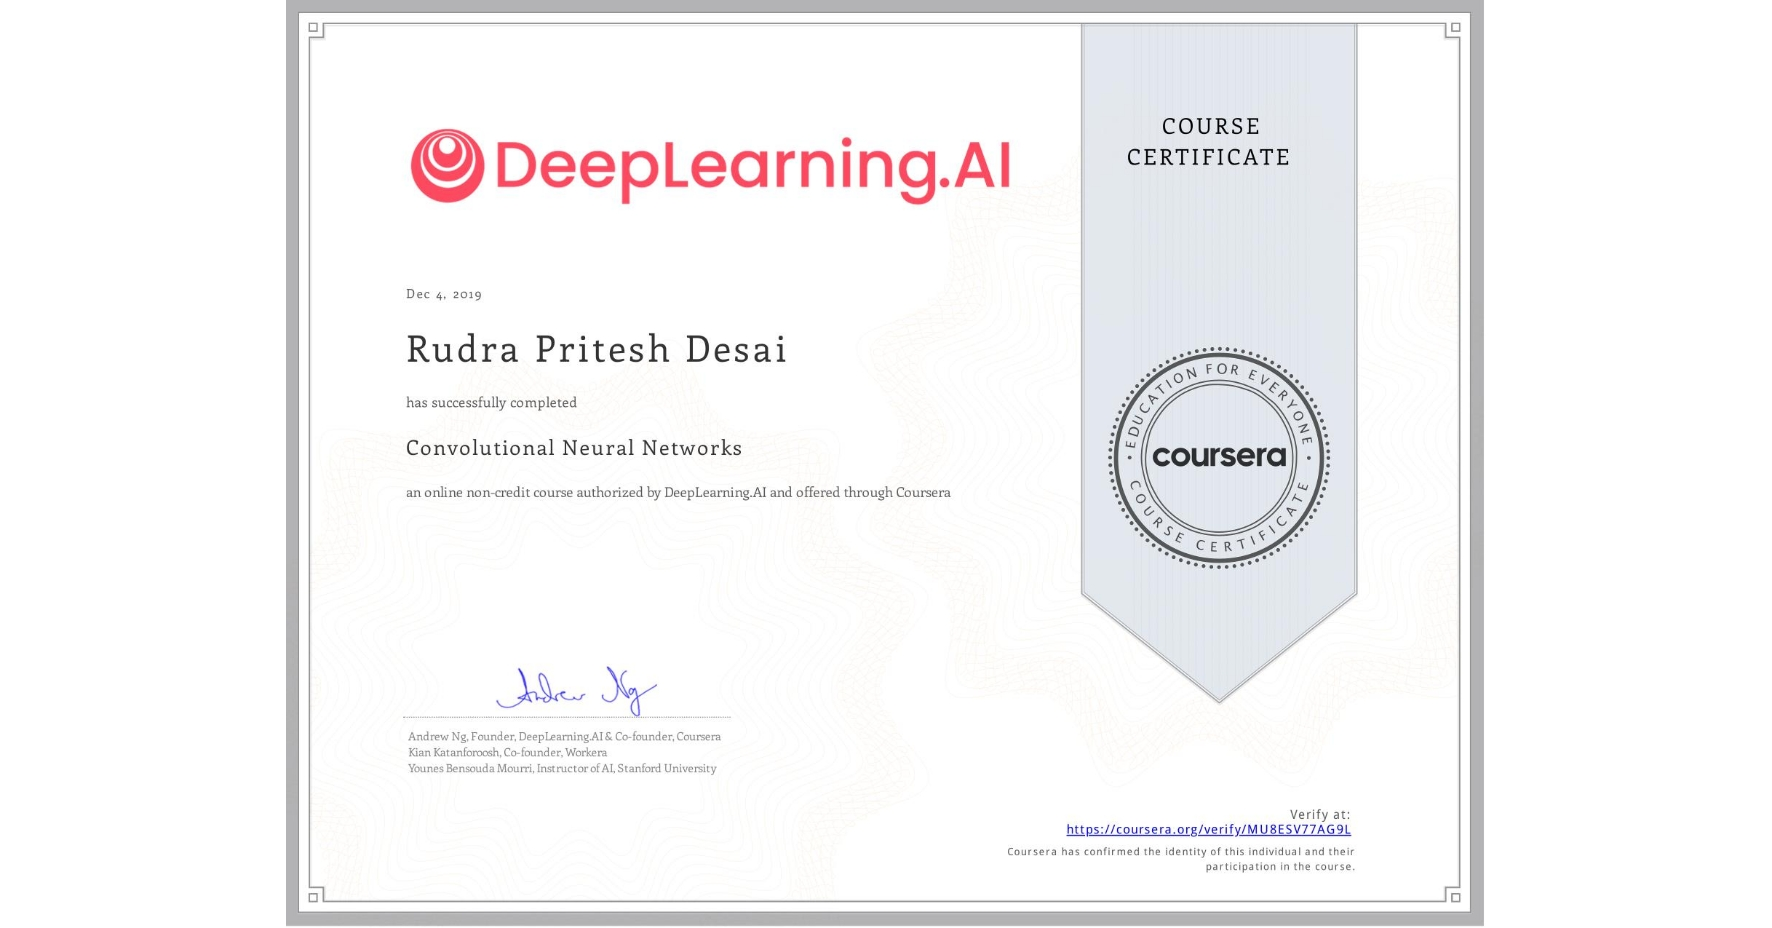 View certificate for Rudra Pritesh Desai, Convolutional Neural Networks, an online non-credit course authorized by DeepLearning.AI and offered through Coursera